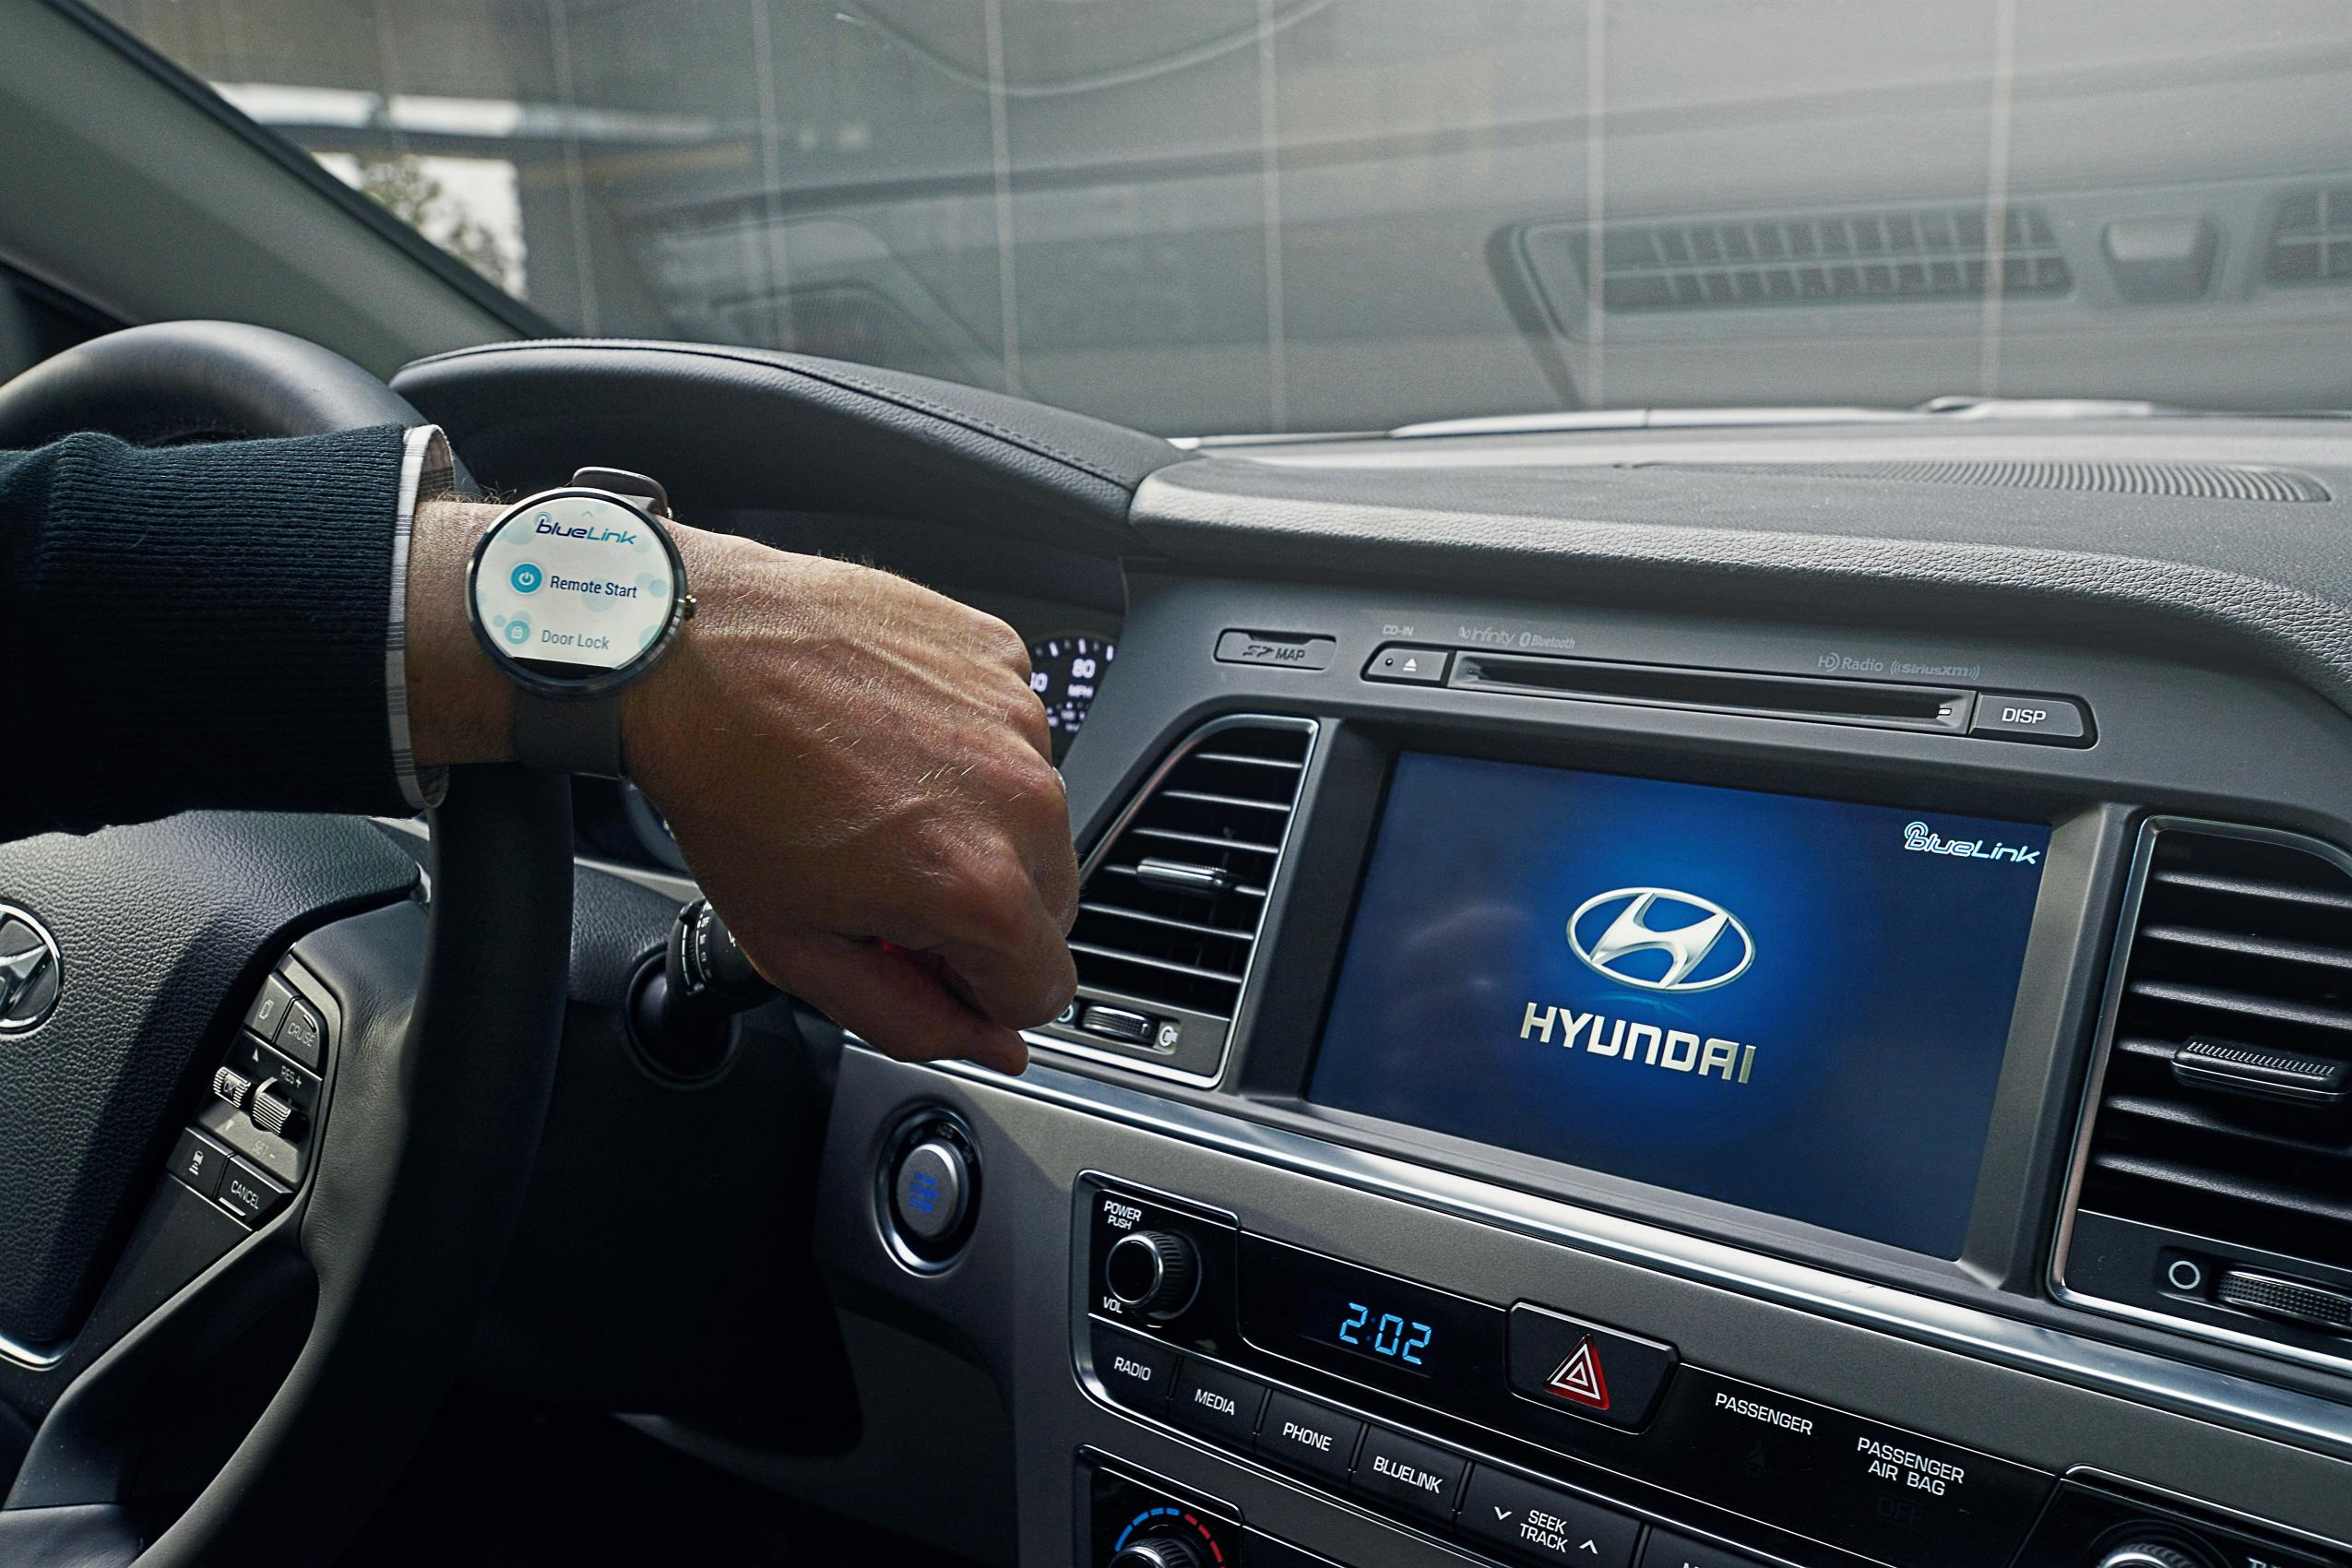 Hyundai Blue Link Debuting Voice Recognition Smartwatch ...